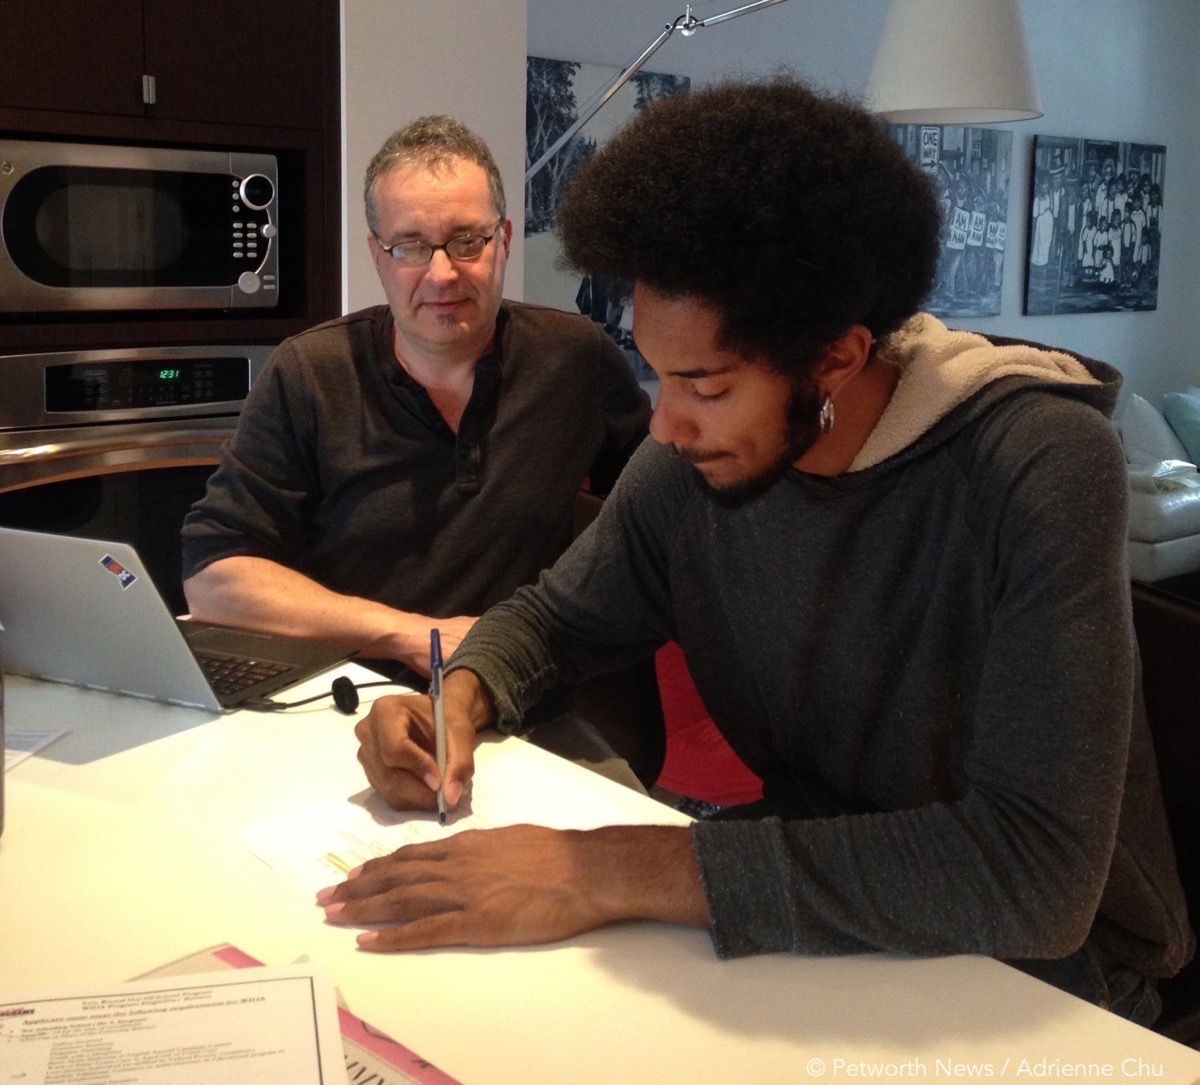 David Sheon, founder of DC Community Carrot, helps Colin Clarke fill out the application for the nonprofit's entrepreneurship program.